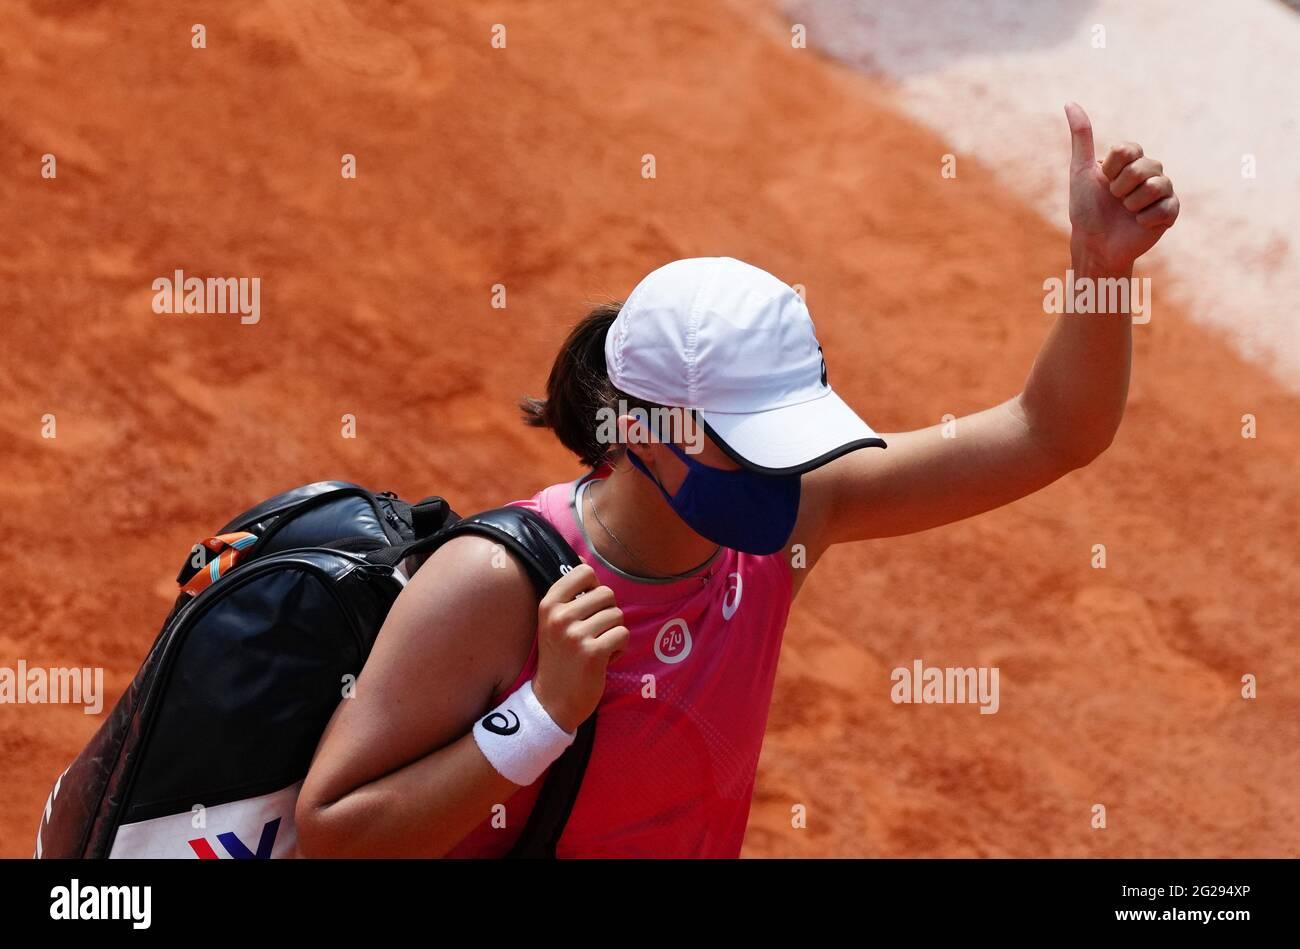 Paris, France. 9th June, 2021. Iga Swiatek of Poland leaves the court after the women's singles quarterfinal match between Maria Sakkari of Greece and Iga Swiatek of Poland at the French Open tennis tournament at Roland Garros in Paris, France, June 9, 2021. Credit: Gao Jing/Xinhua/Alamy Live News Stock Photo